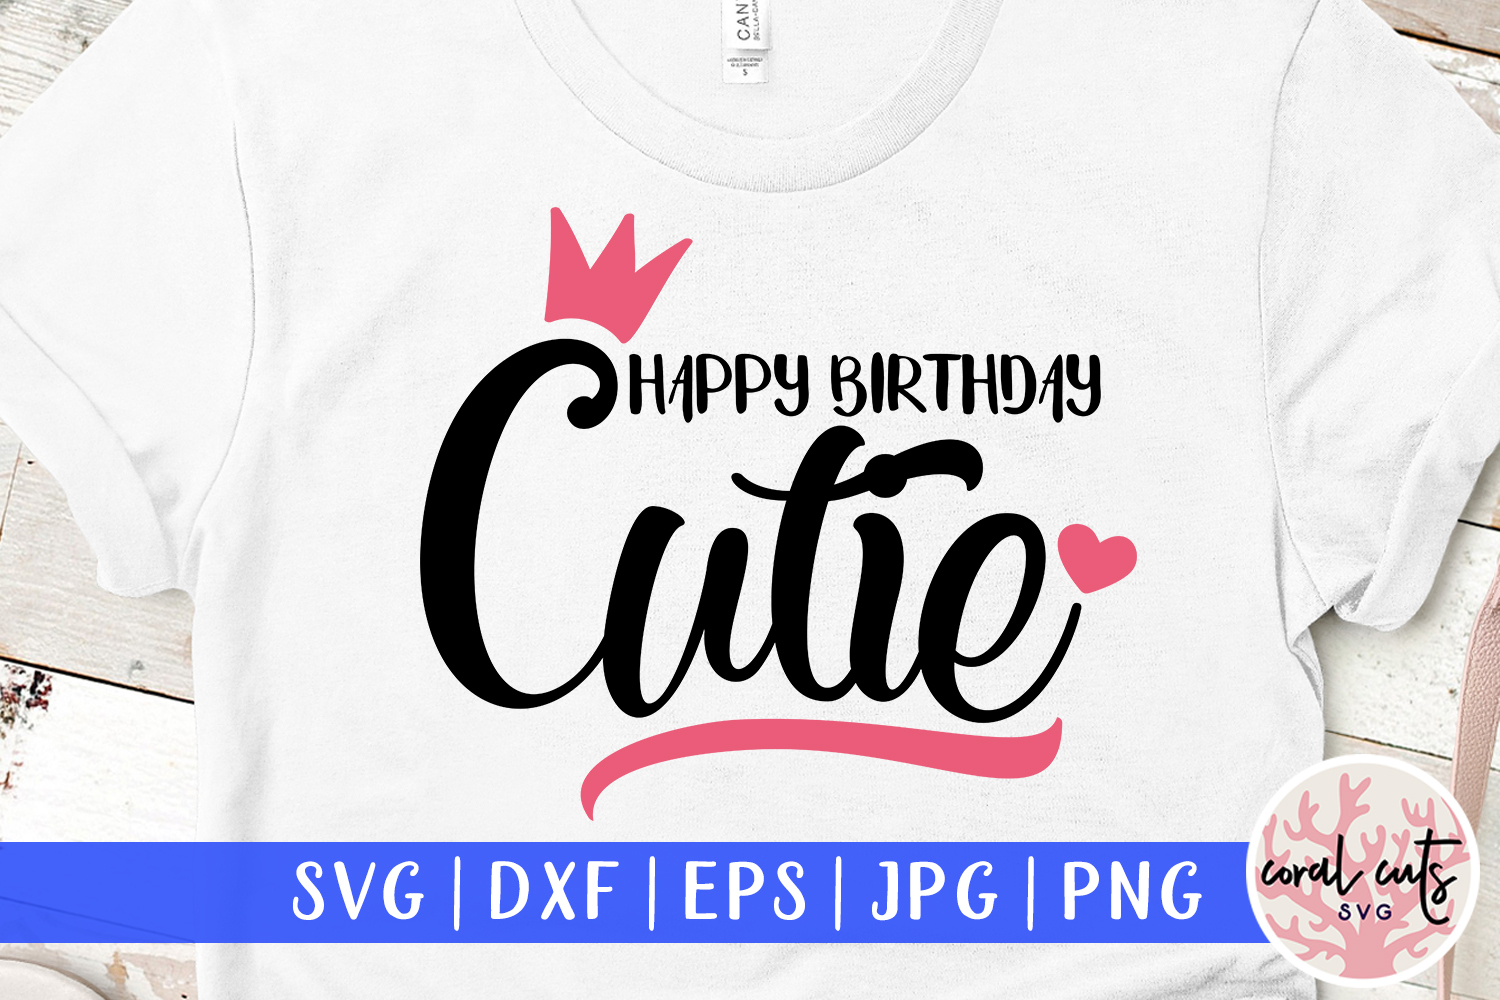 Download Free Happy Birthday Cutie Graphic By Coralcutssvg Creative Fabrica for Cricut Explore, Silhouette and other cutting machines.